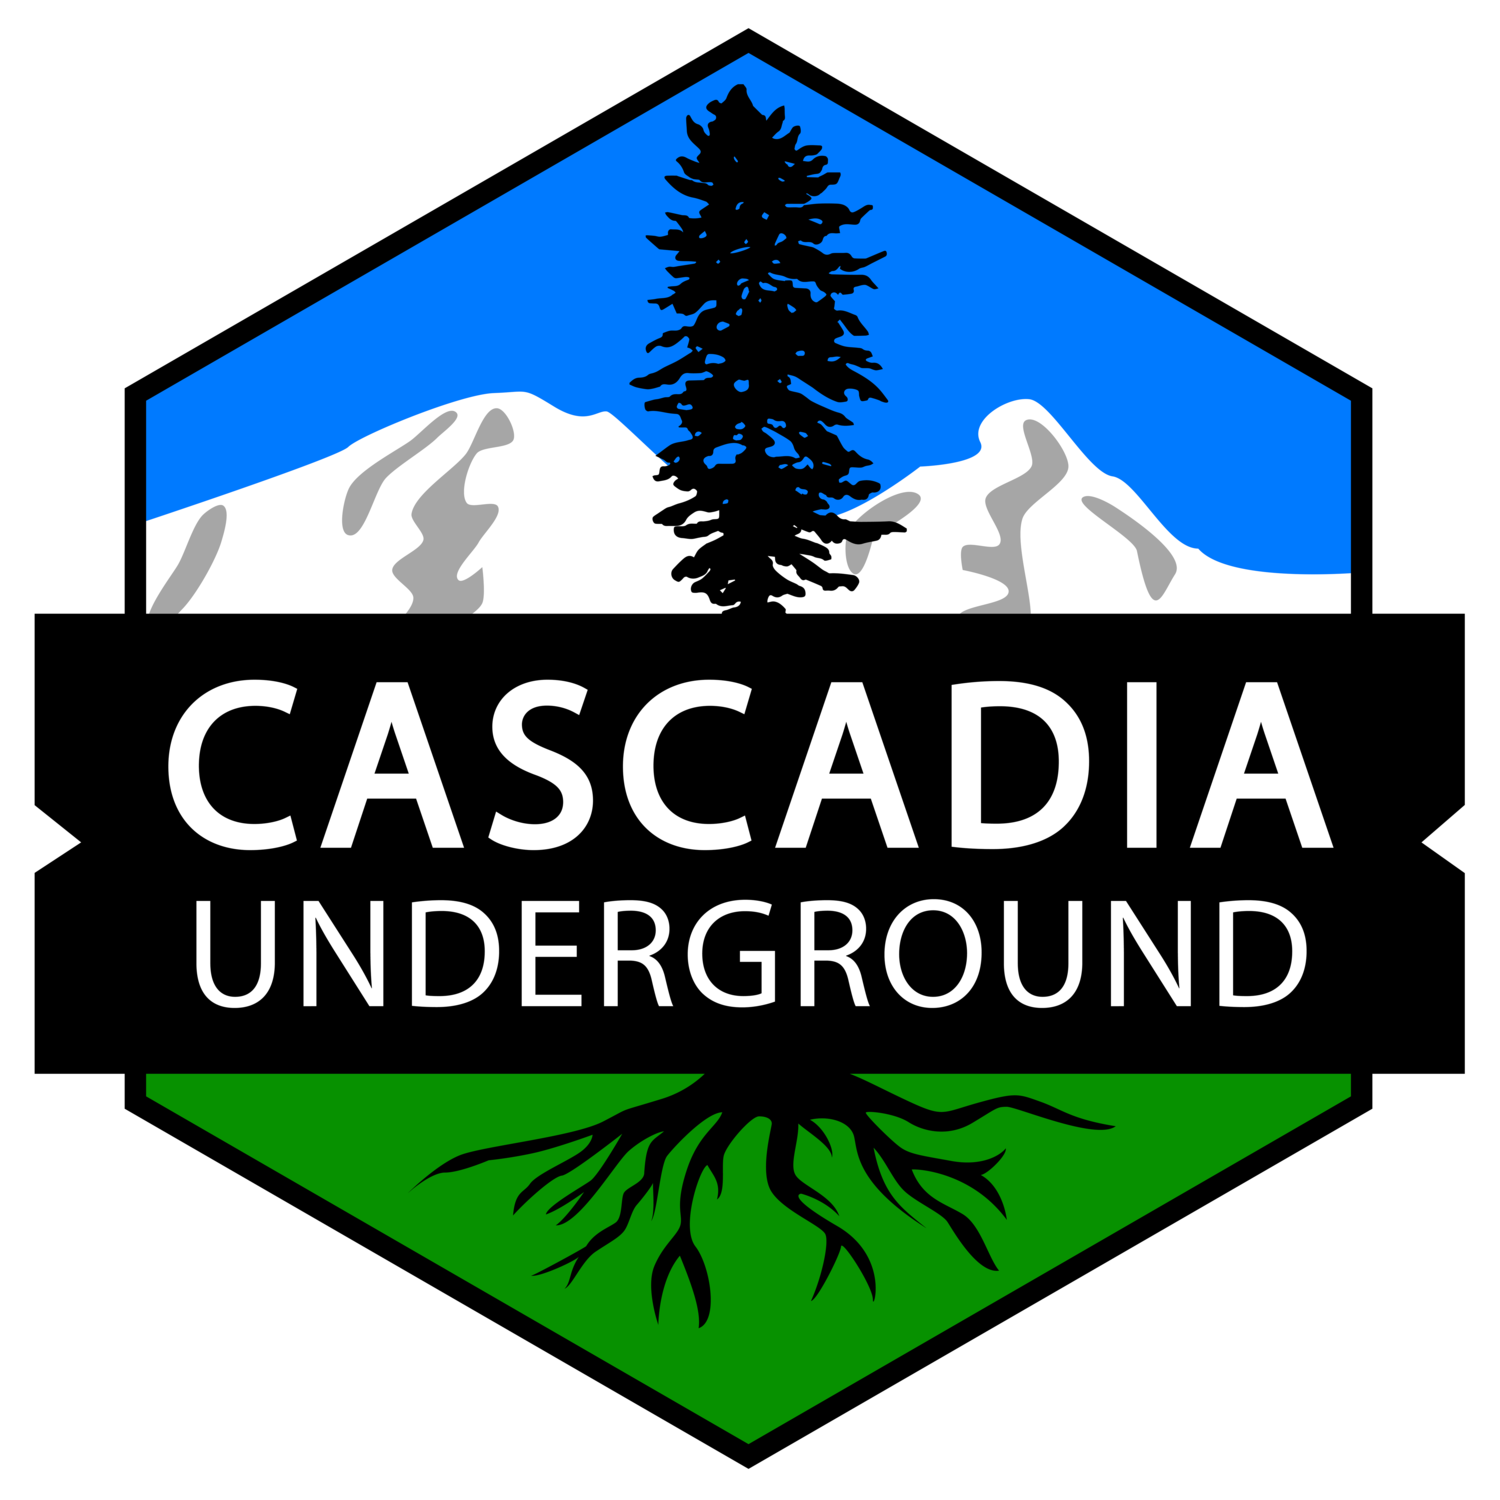 The Cascadia Underground